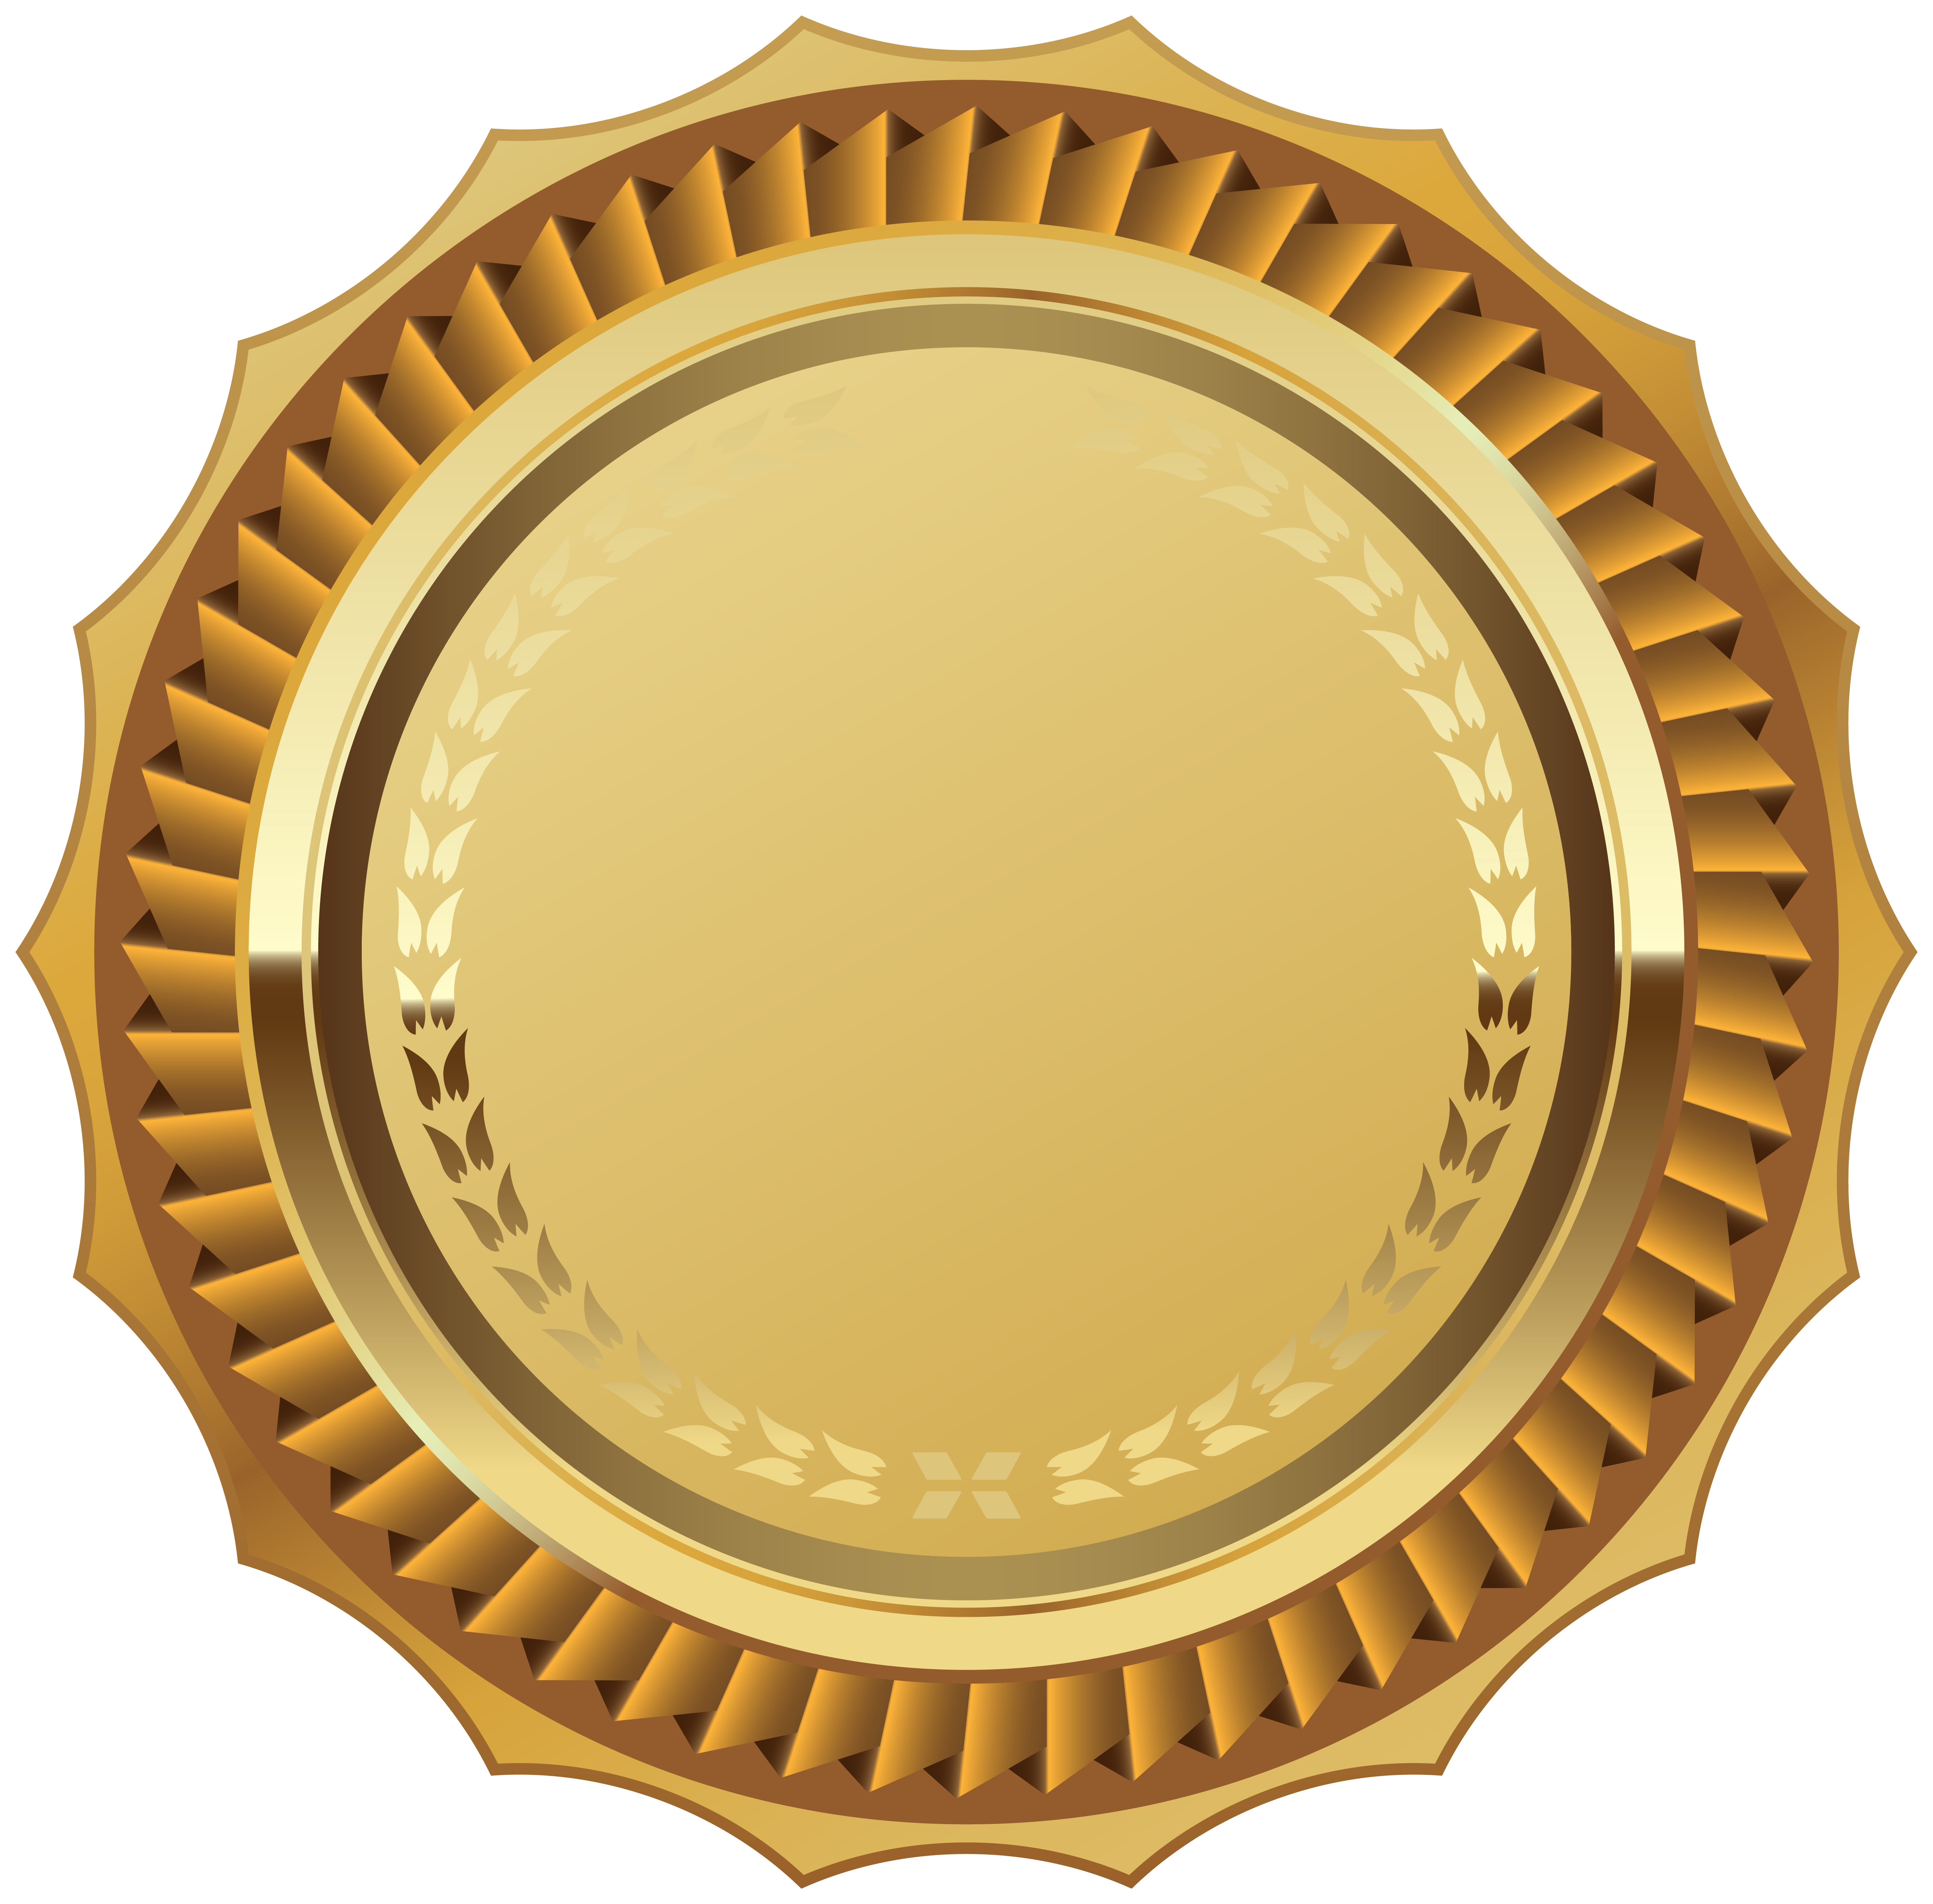 Clipart gold seal graphic freeuse download Gold Seal with Ribbon PNG Clipart Image | Gallery Yopriceville ... graphic freeuse download